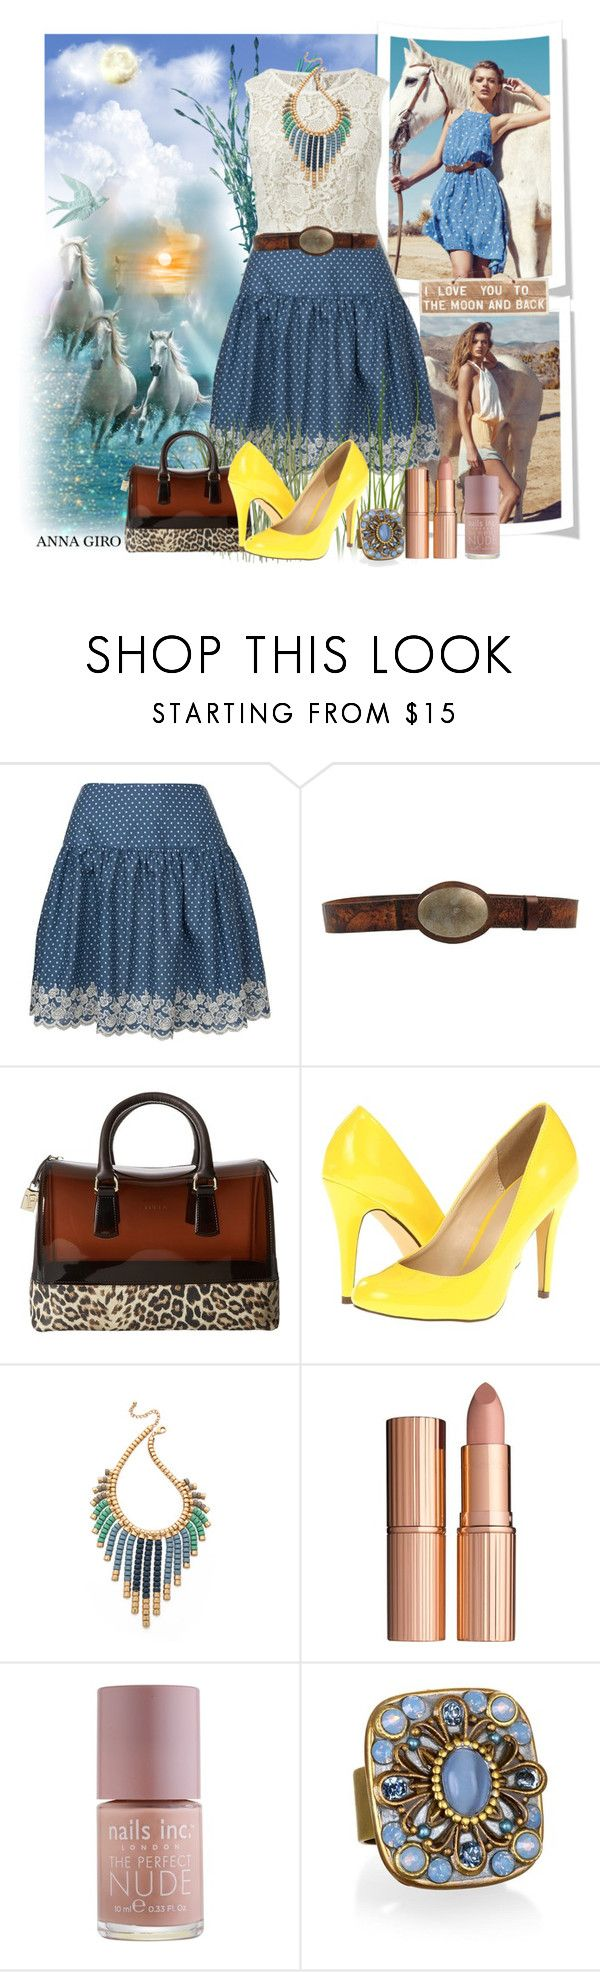 Kocham CIe. by annagiro on Polyvore featuring moda, Tokyo Doll, Michael Antonio, Furla, Adia Kibur, Levi's, Charlotte Tilbury, Nails Inc. and CAbi